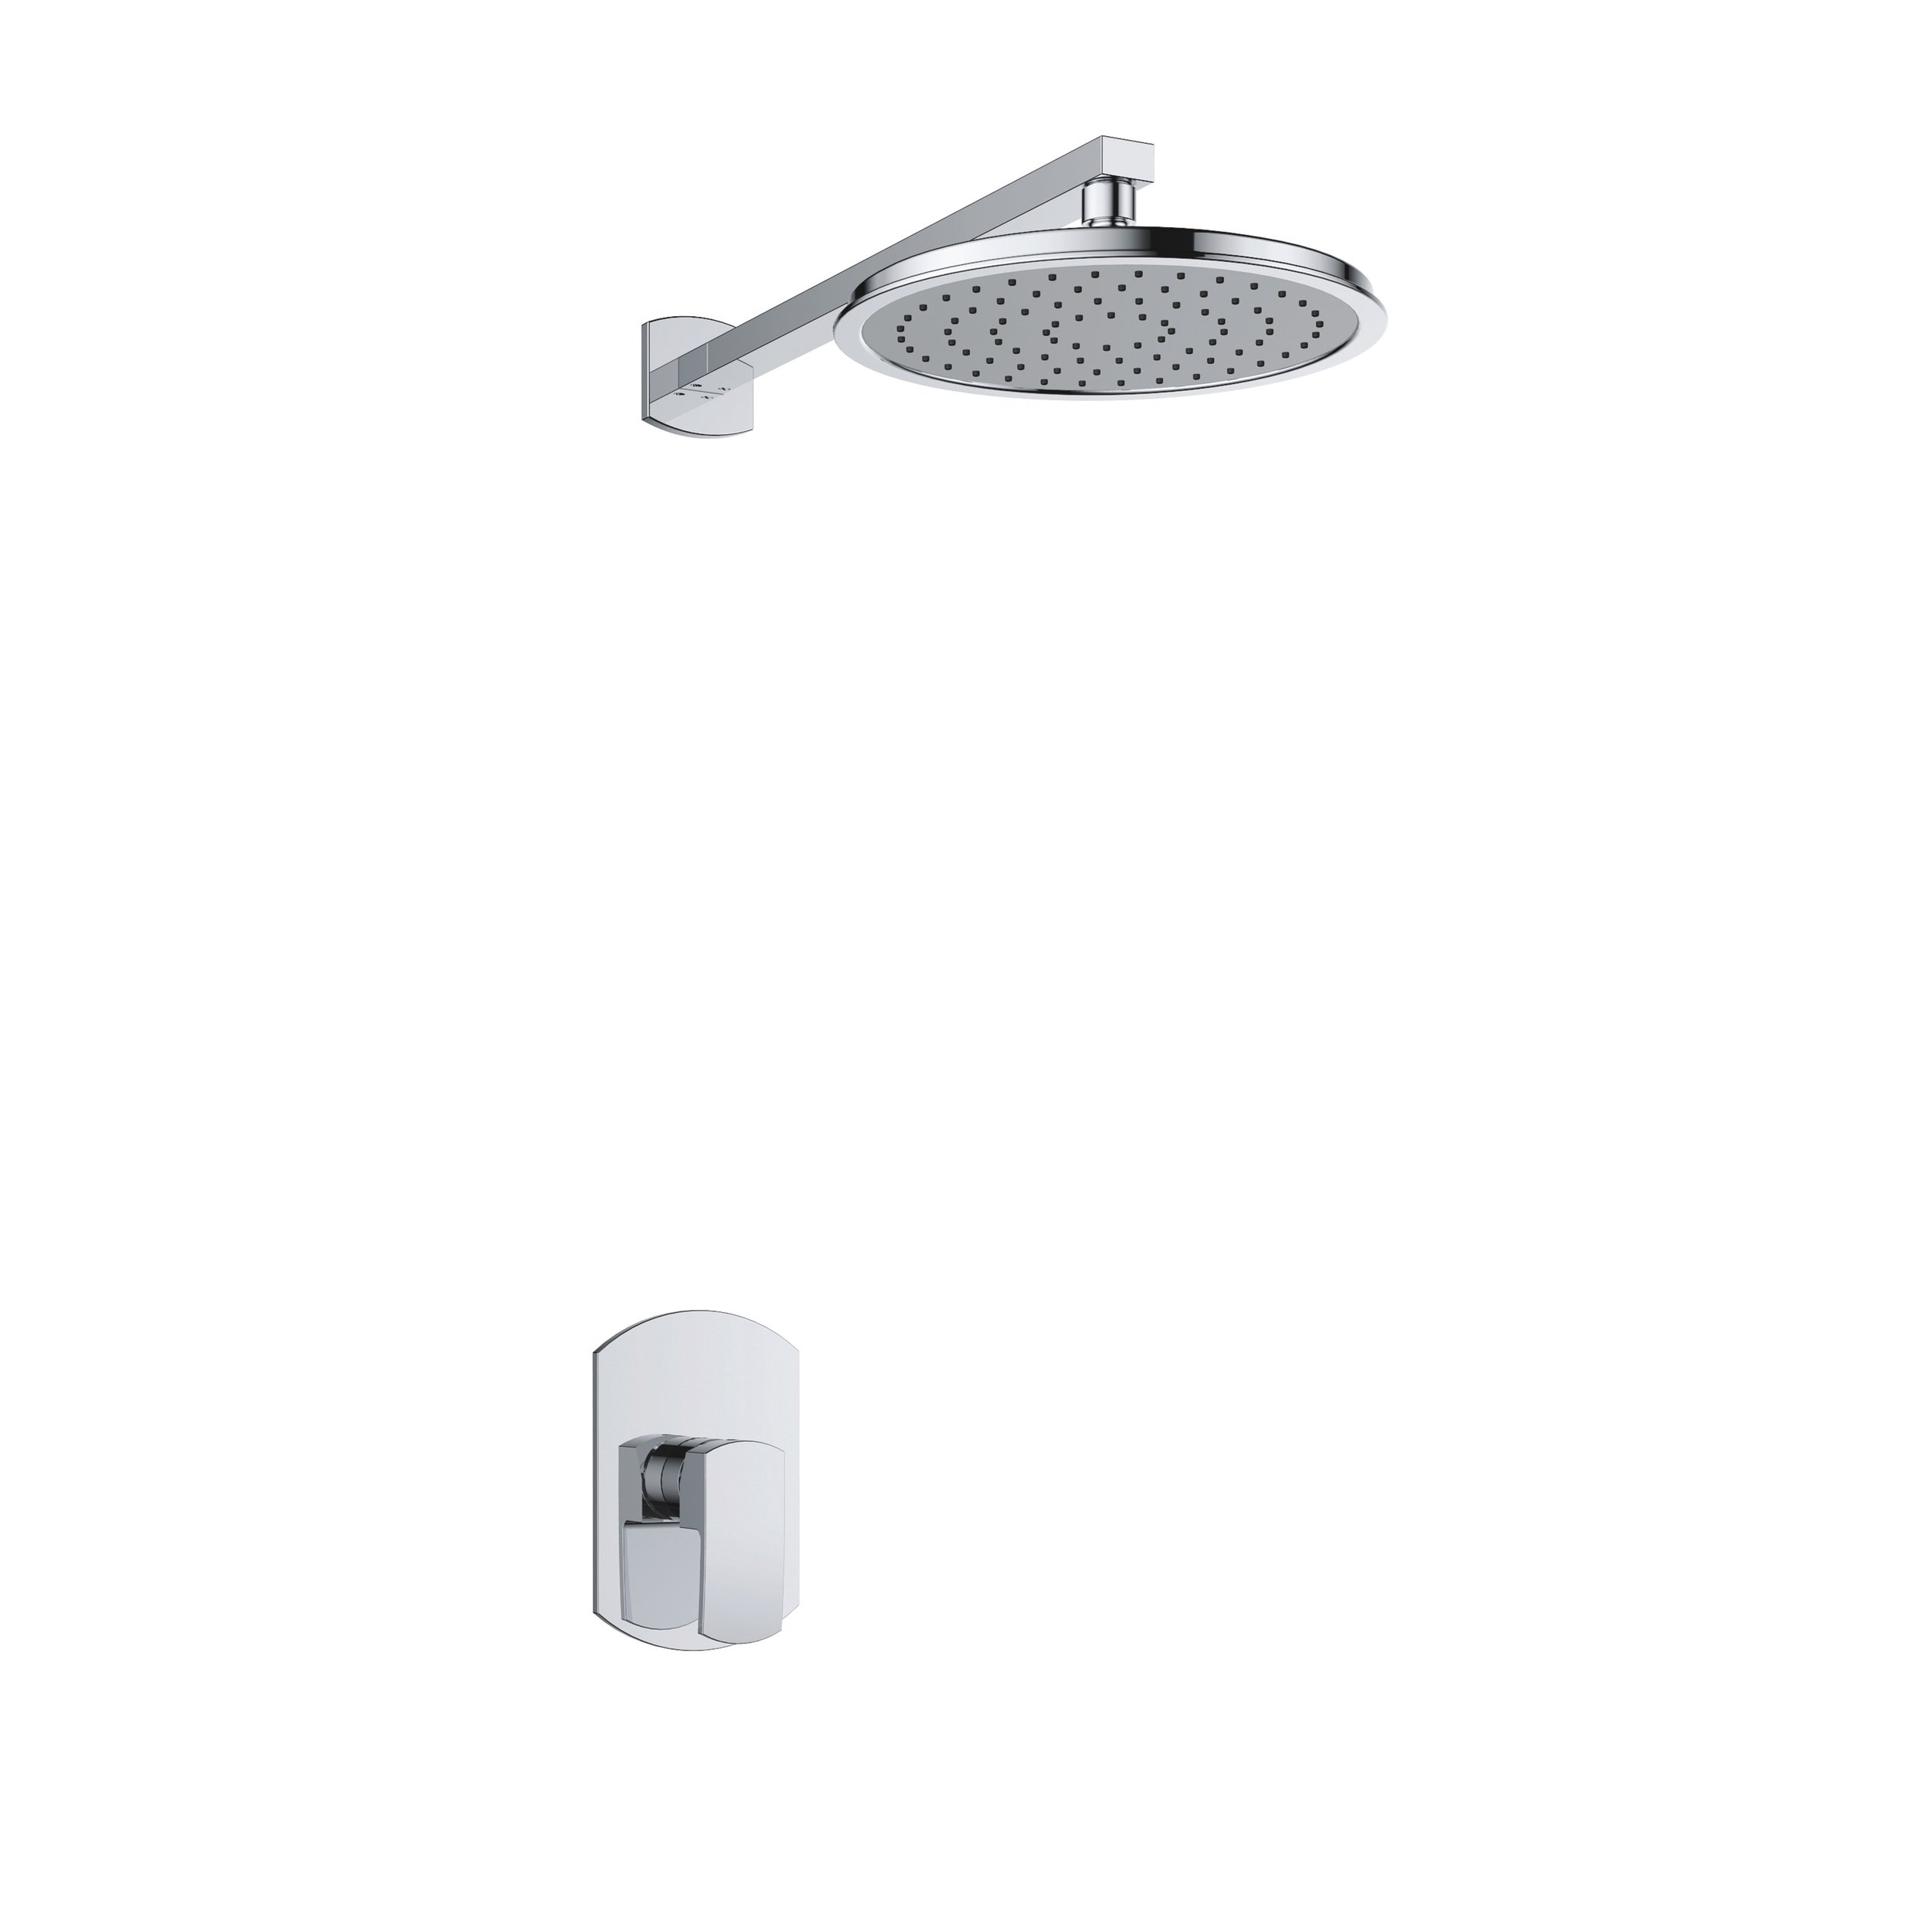 7357-102: Concealed shower valve with head shower